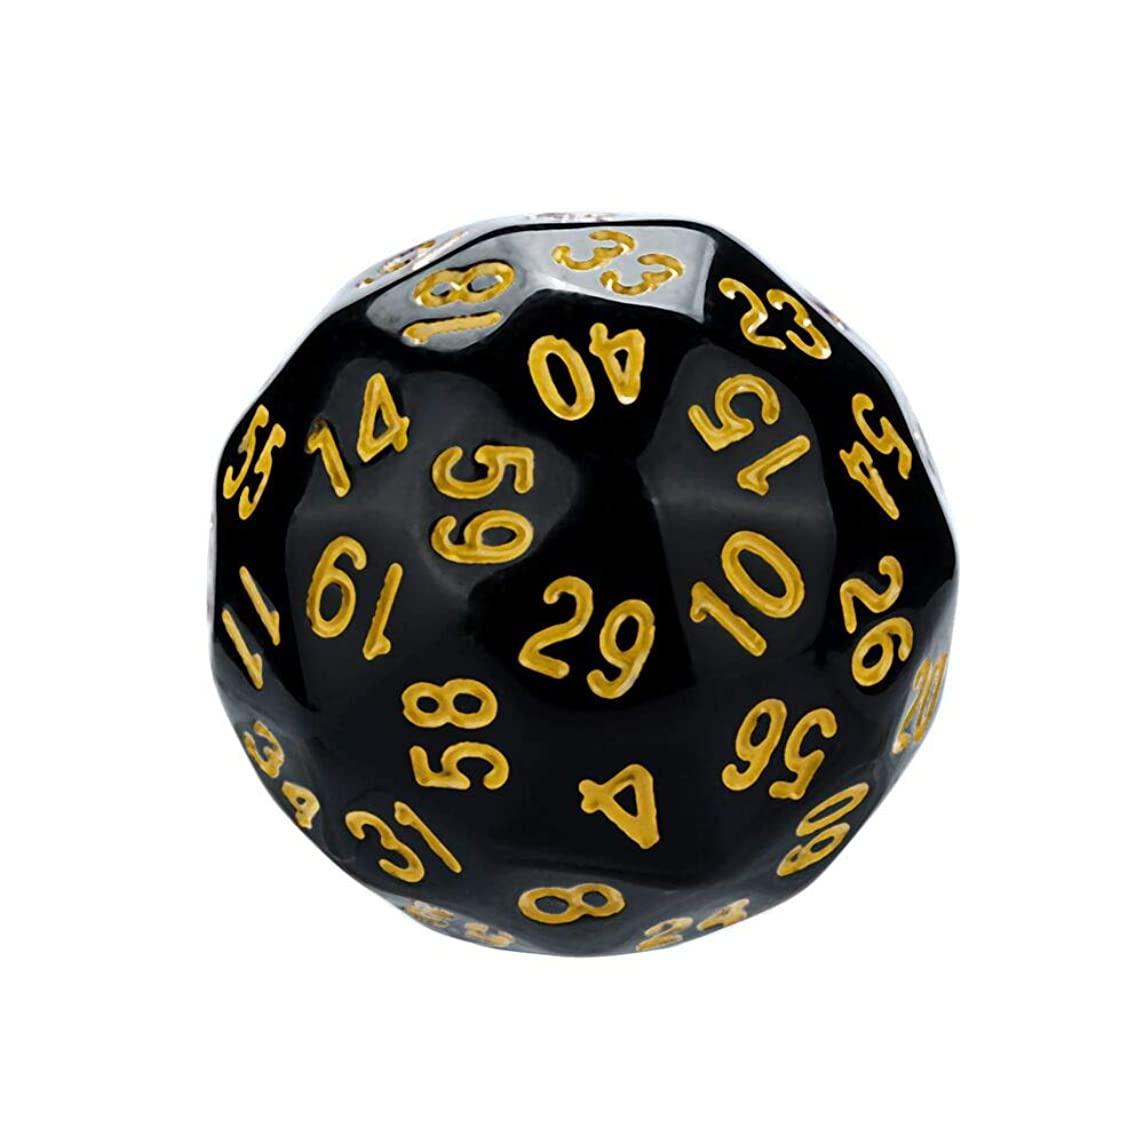 Dreamyth- 1Pcs for Game Dungeons & Dragons Polyhedral D60 Multi Sided Acrylic Dice Practical